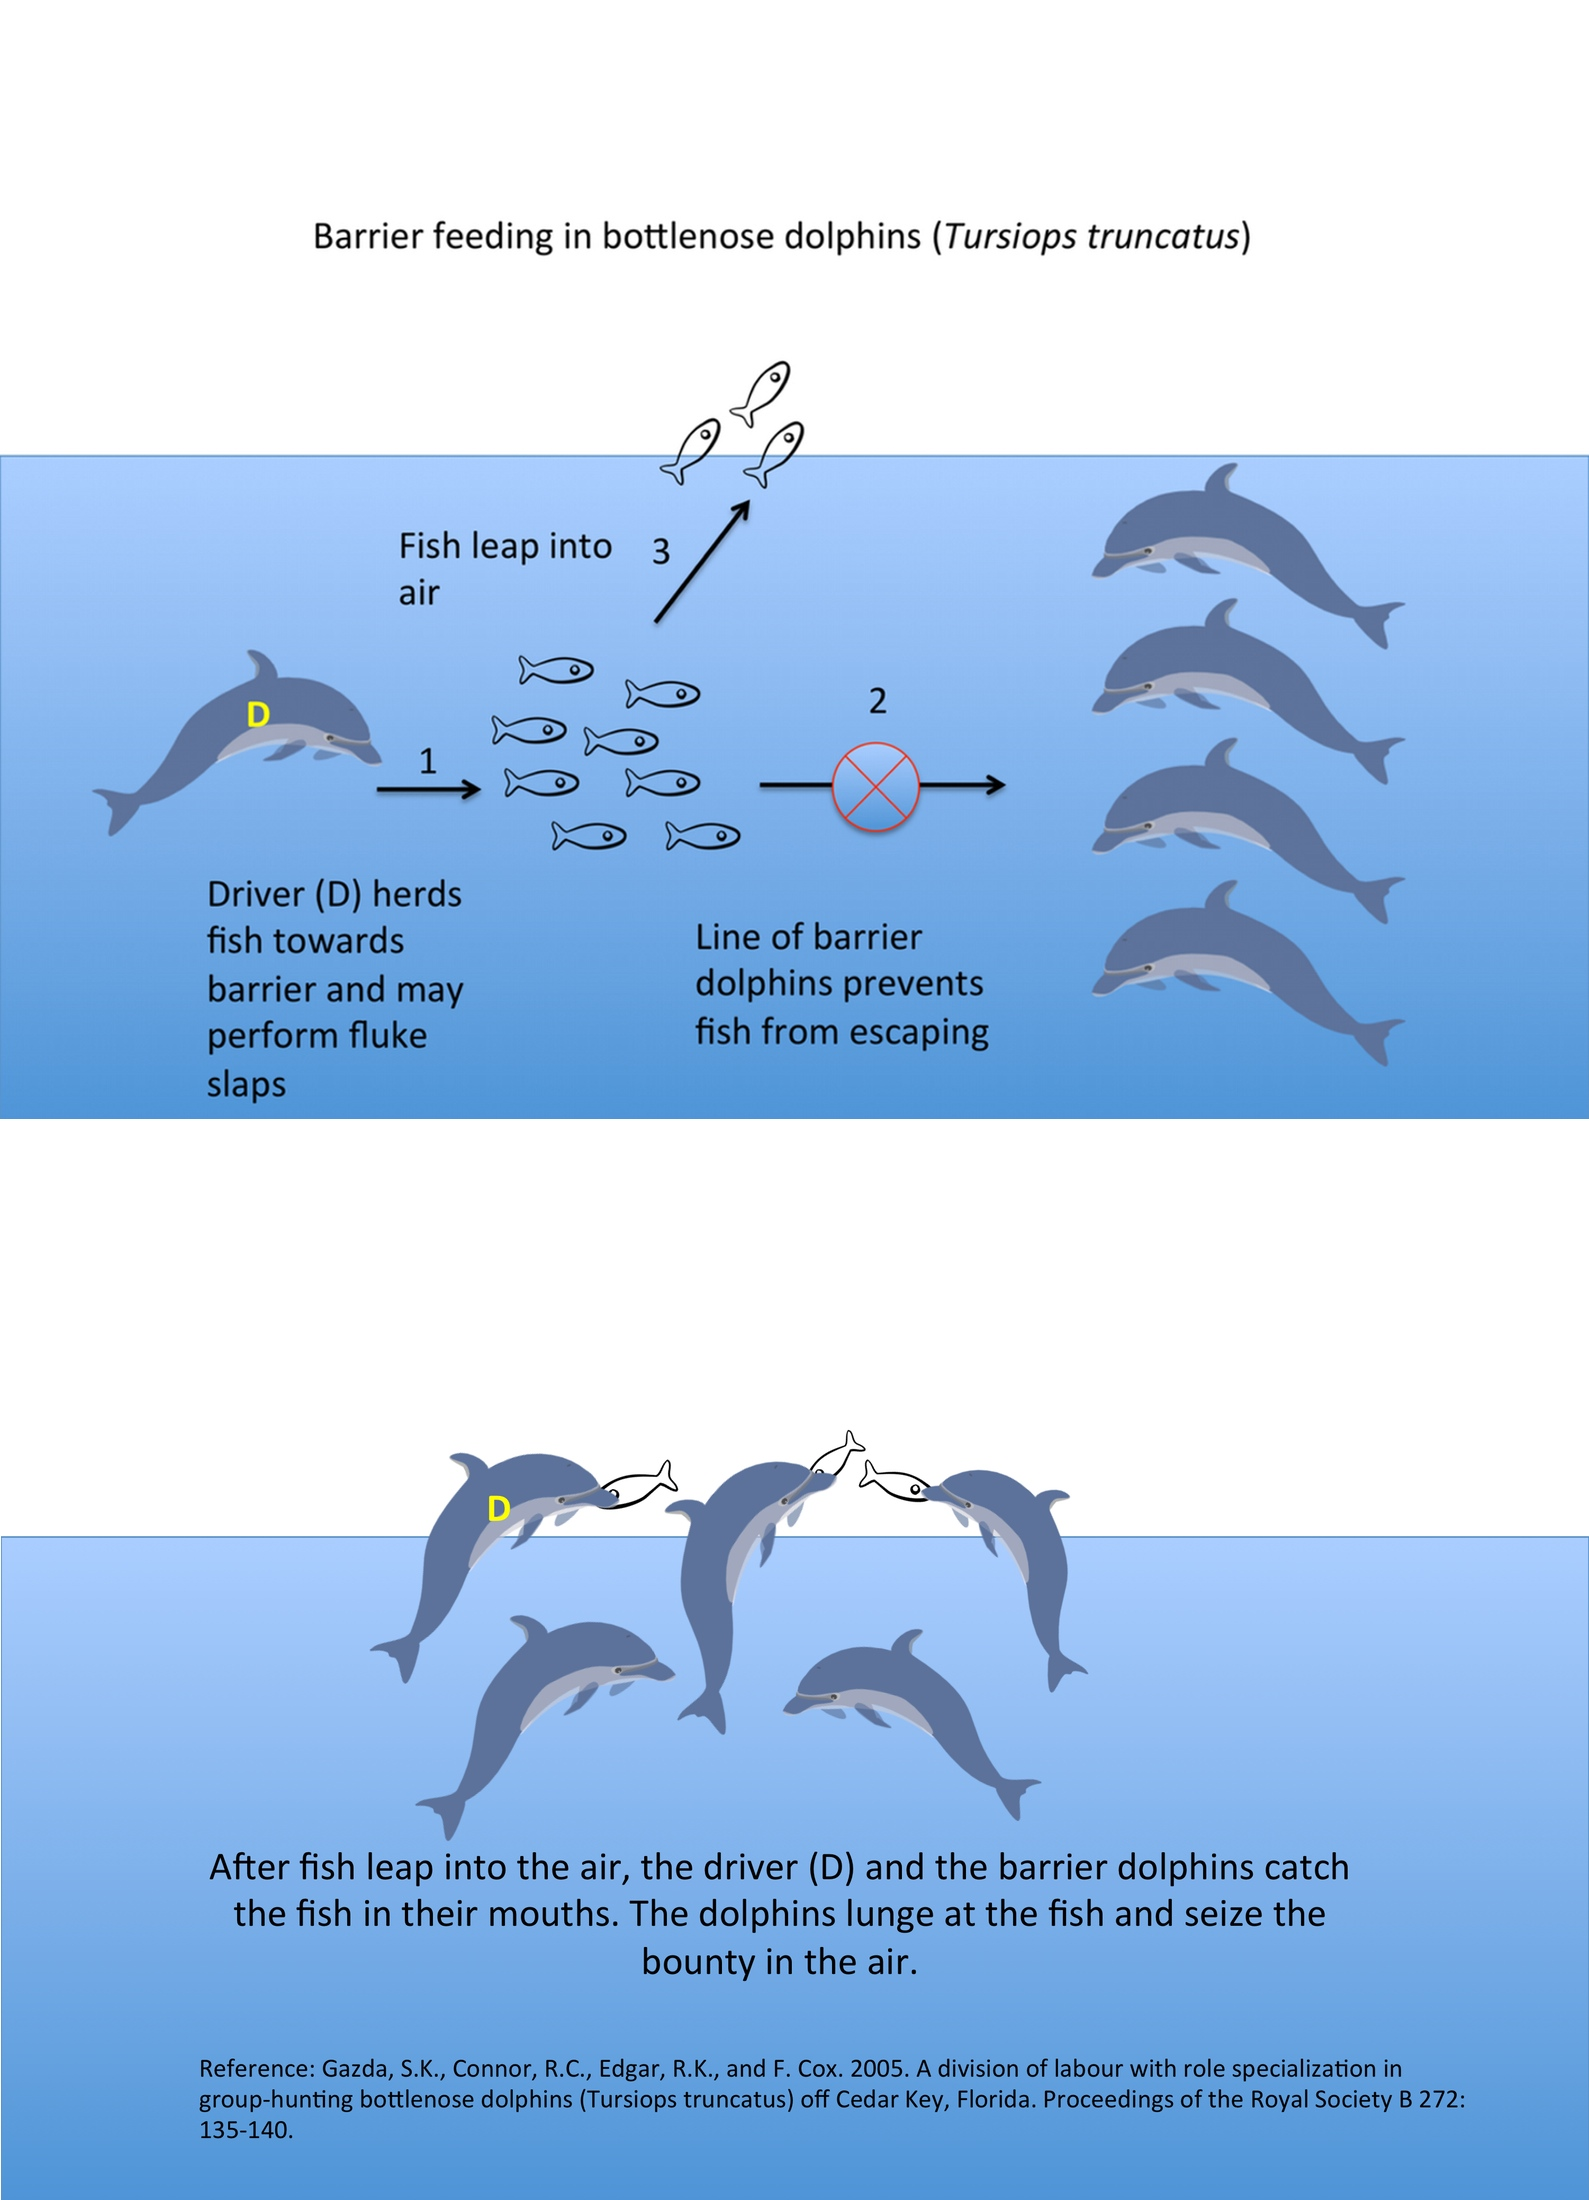 an analysis of mirror self recognition in bottlenose dolphins In comparing the emergence of mirror self-recognition in chimpanzee infants and  human infants  the meaning of self-recognition as measured by the mark test   dolphins (marino, reiss, & gallup, 1994), and notably monkeys do neither ( anderson & gallup  1999 inoue  mirror self-recognition in bottlenose dolphins.